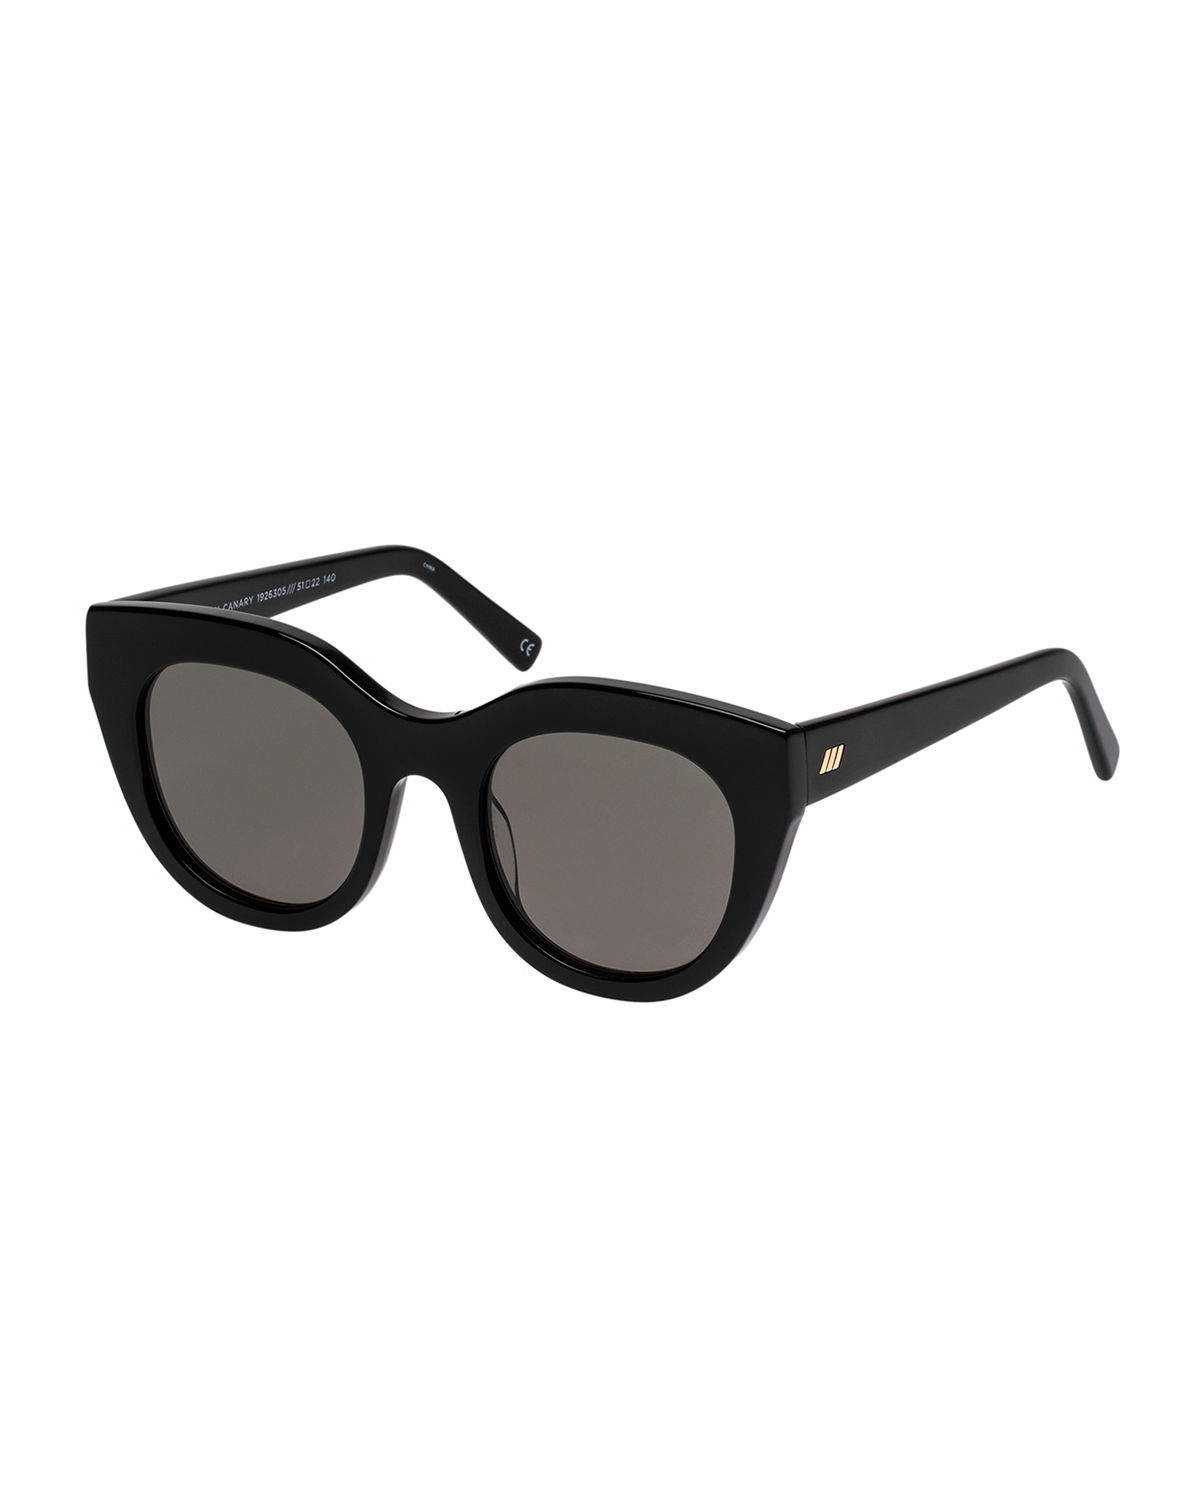 Le Specs Sunglasses AIRY CANARY CAT-EYE SUNGLASSES